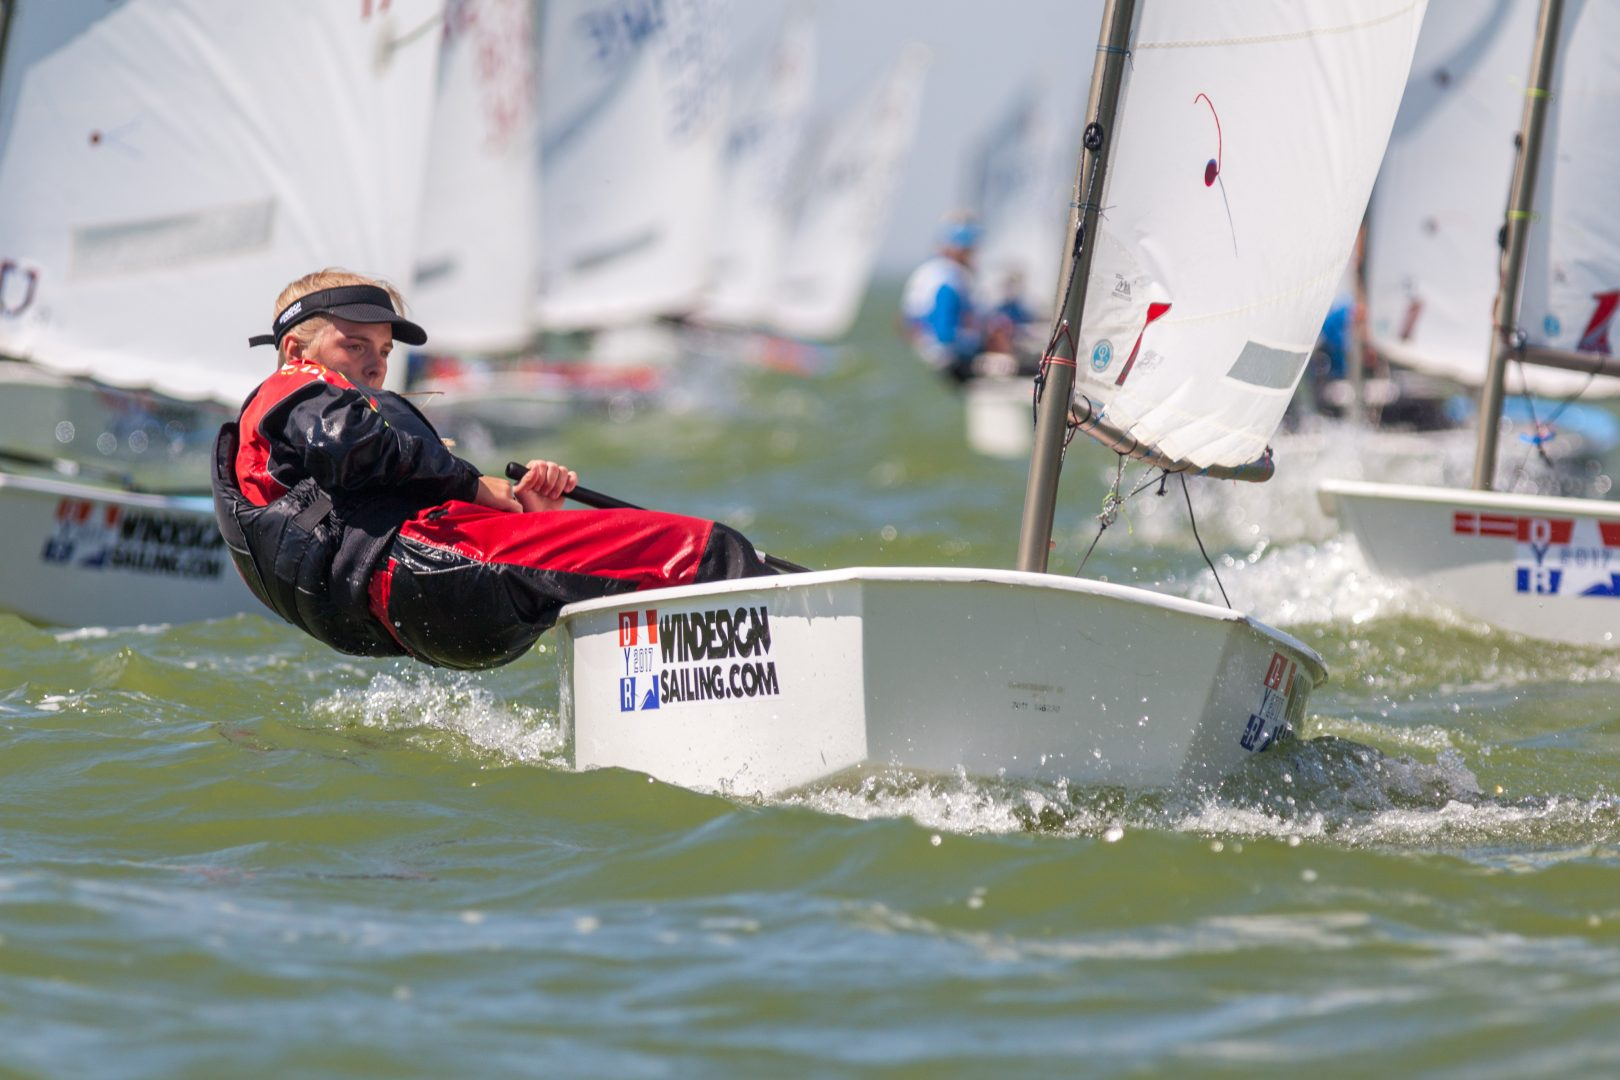 Optimist, Laser, 29er, Nacra 15, var. classes - Dutch Youth Regatta - Workum - Final results